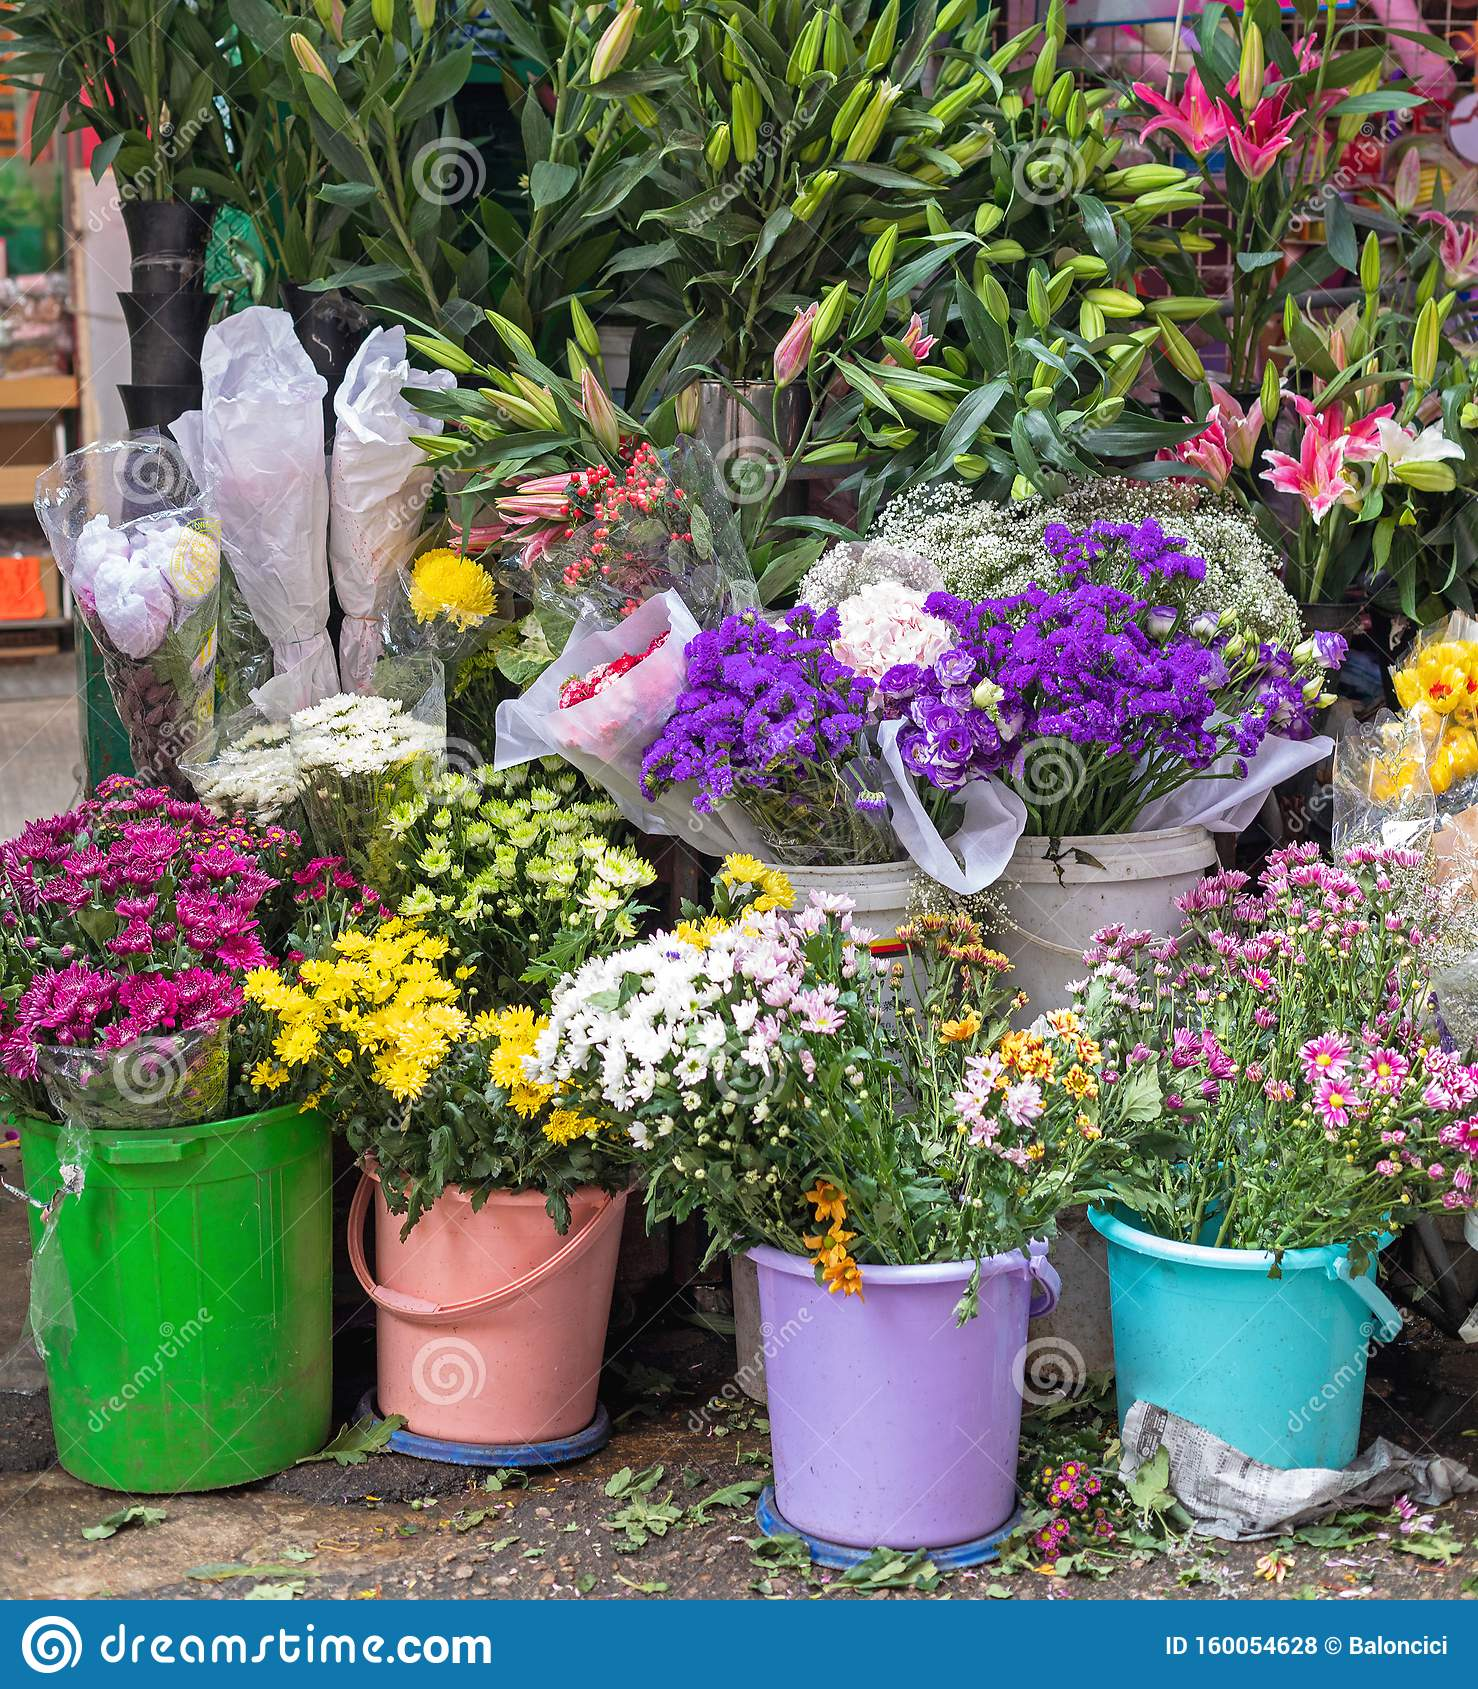 Flowers In Buckets Stock Photo Image Of Shop Buckets 160054628